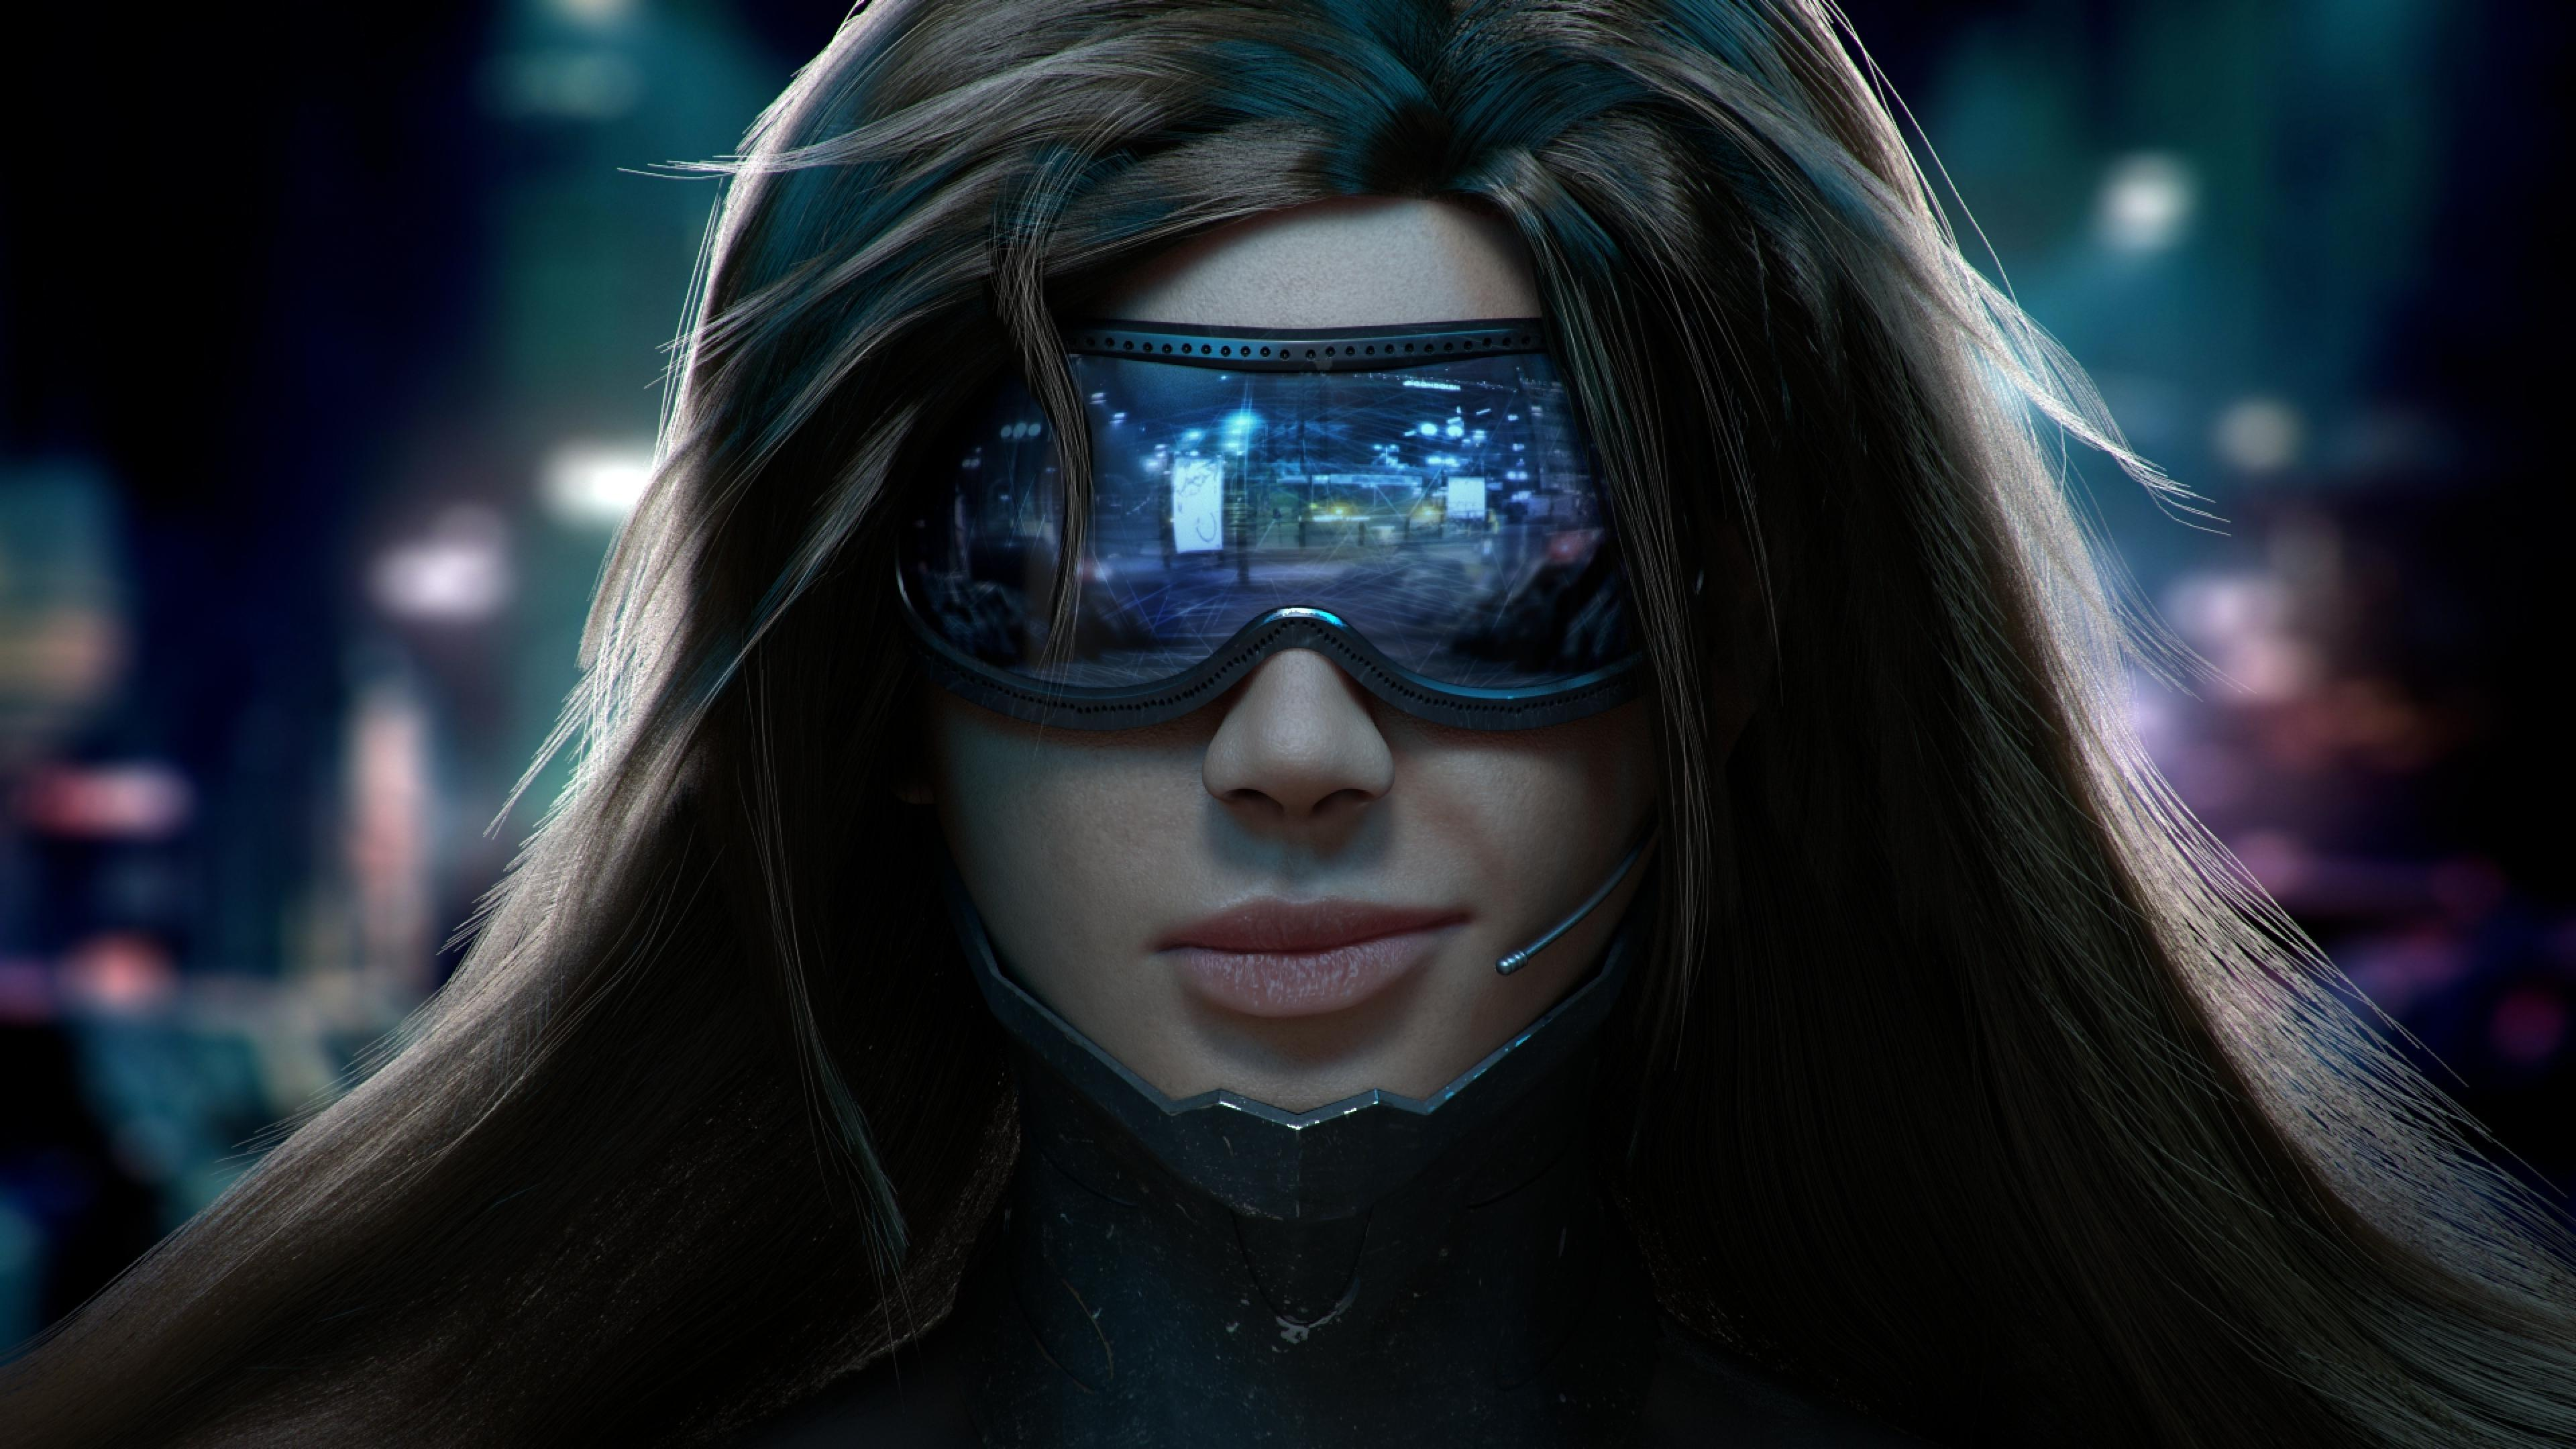 cyberpunk scifi girl, hd games, 4k wallpapers, images, backgrounds